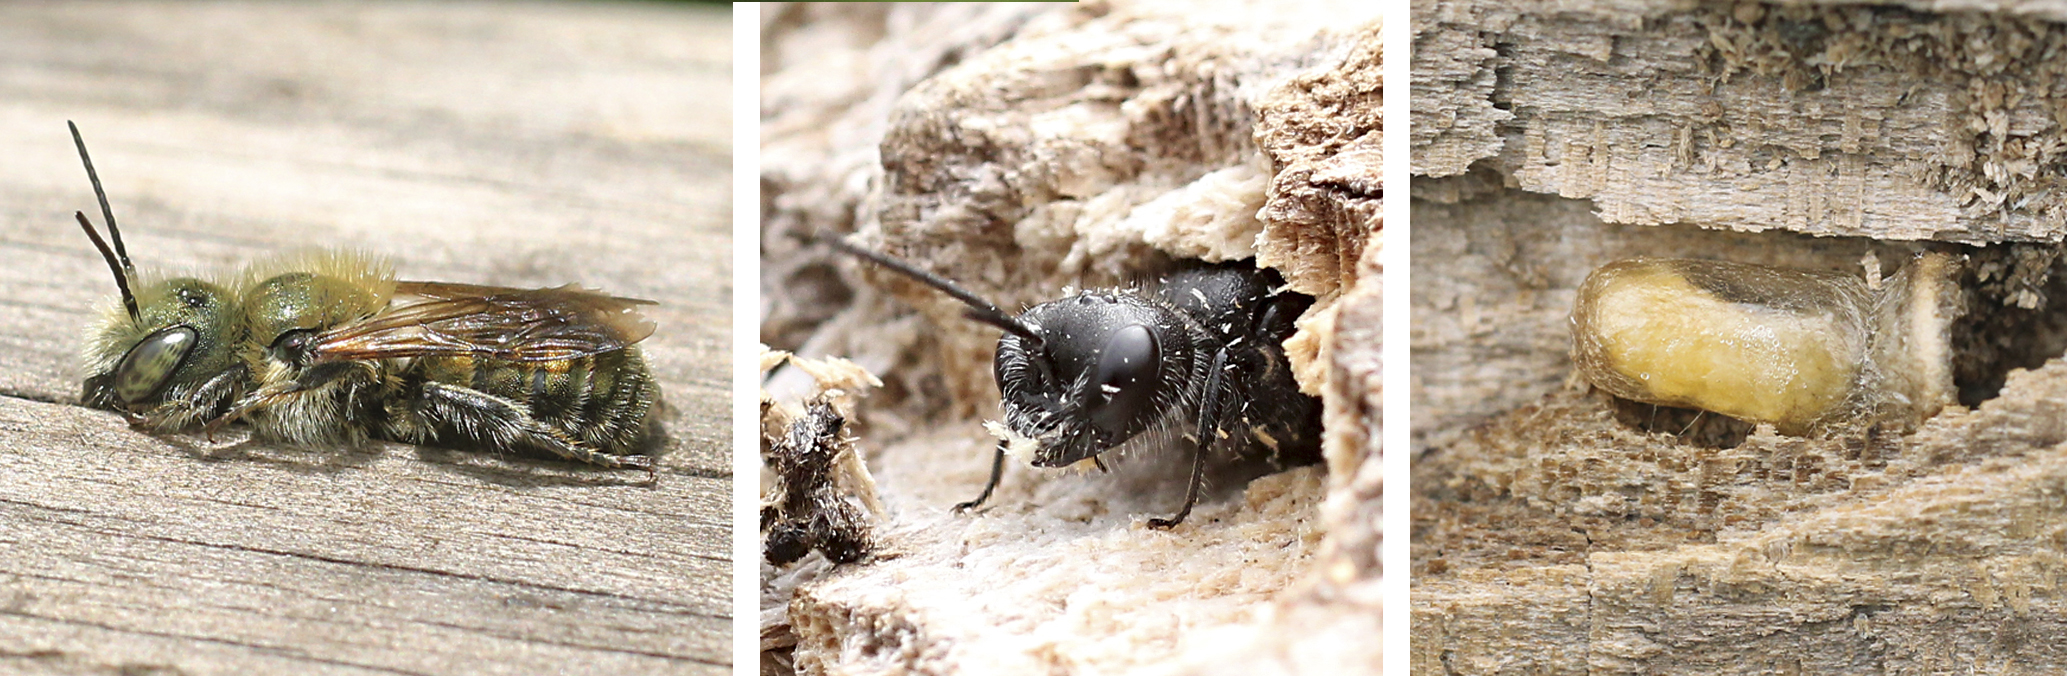 Solitary bee, wasp, and wasp larva in cocoon